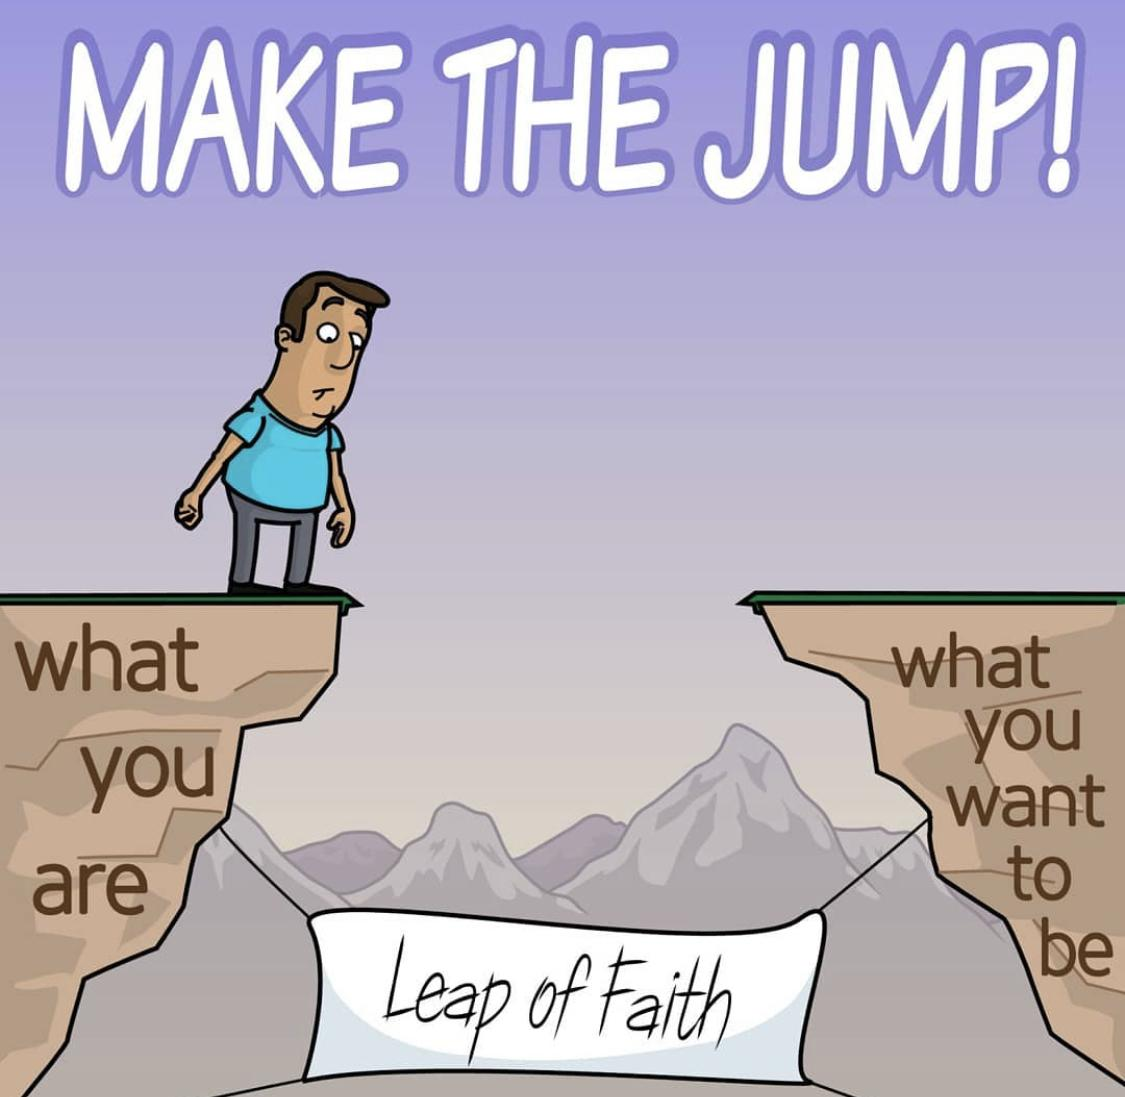 [Image] Make the Jump!